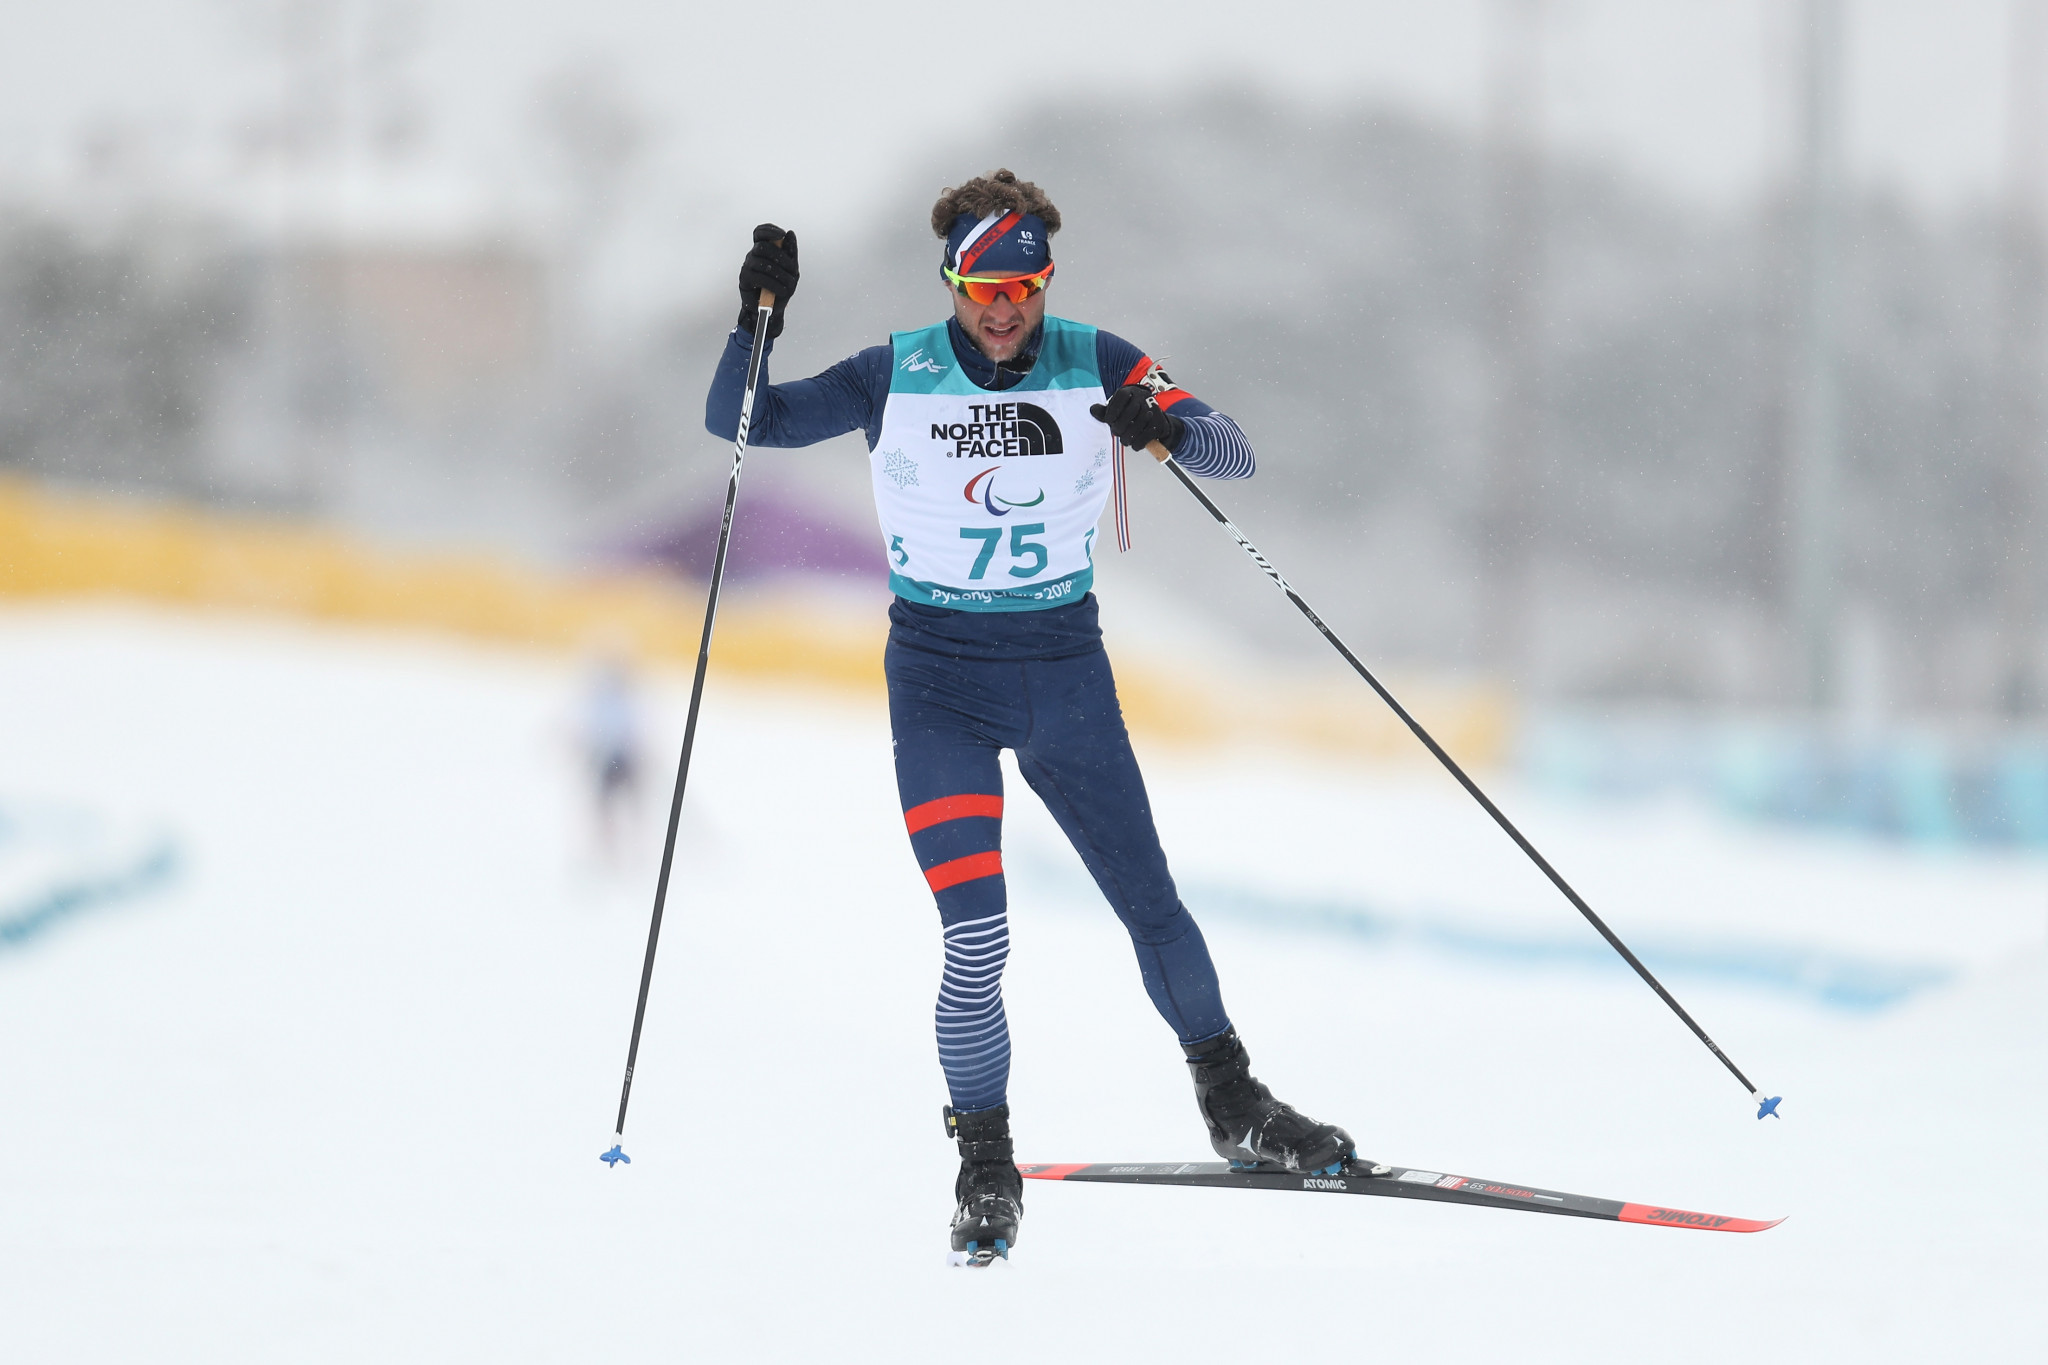 Paralympic champion Daviet continues excellent form with biathlon gold at World Para Nordic Skiing Championships